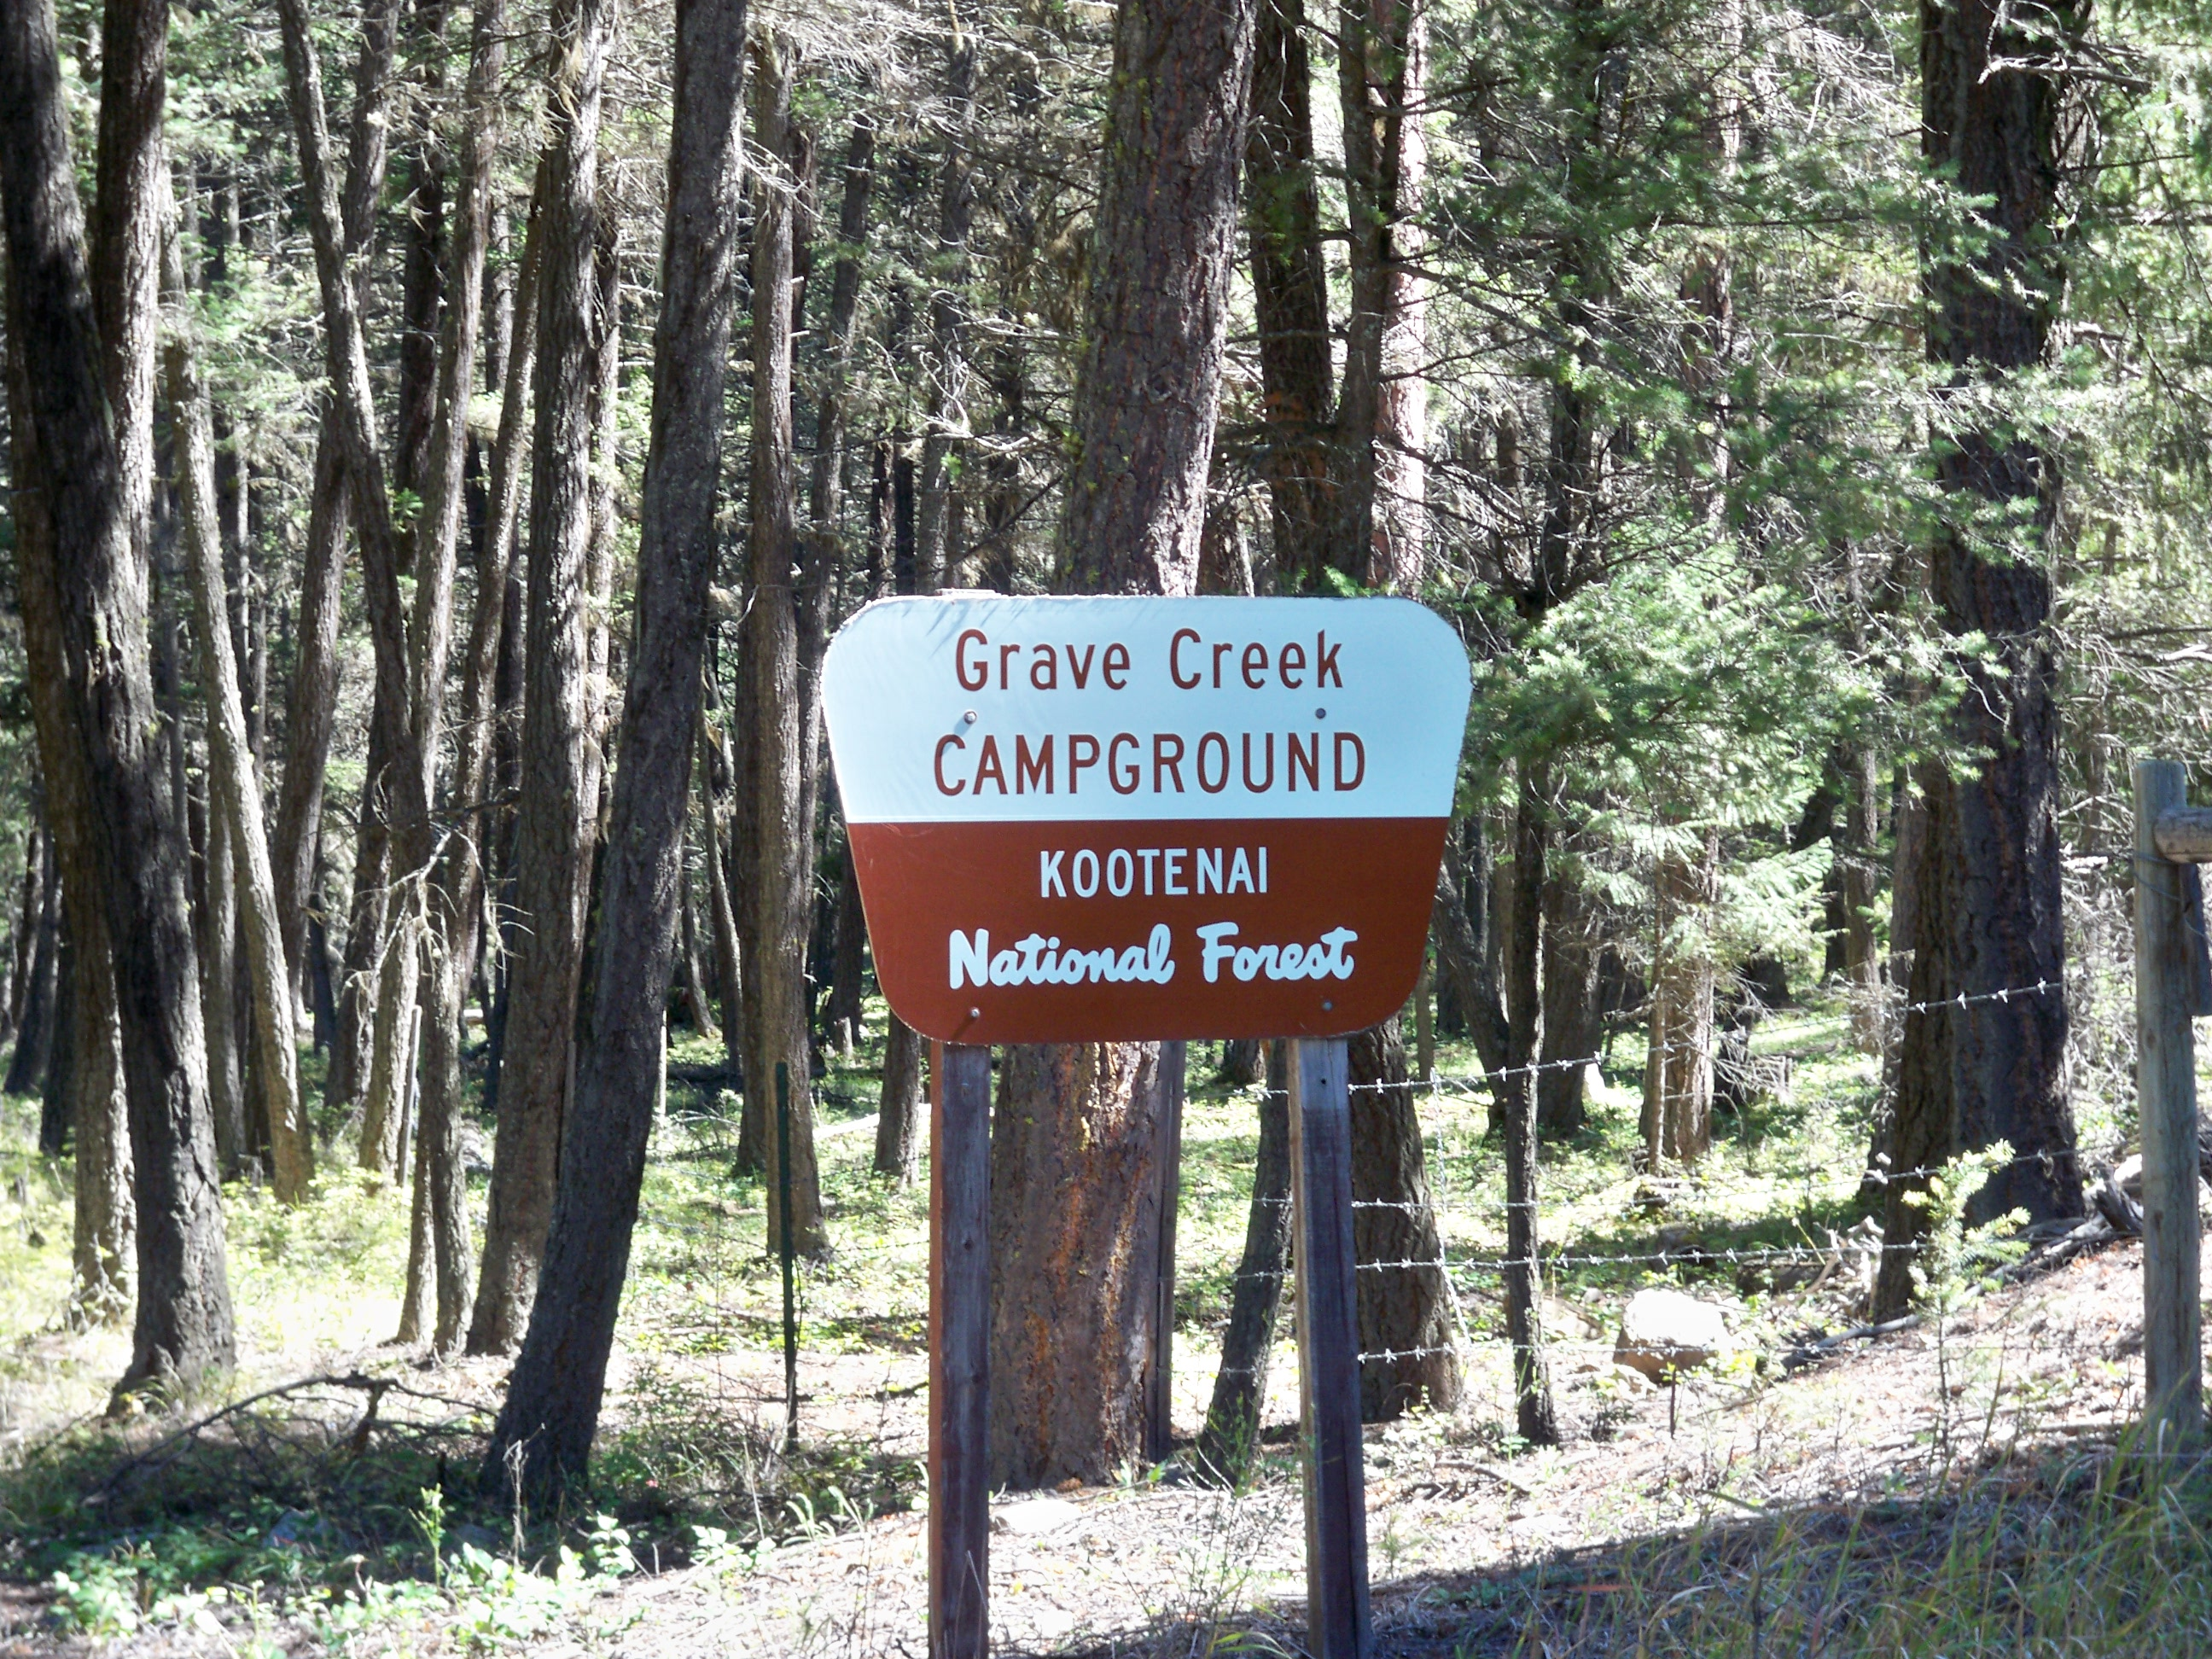 Entrance sign to campground